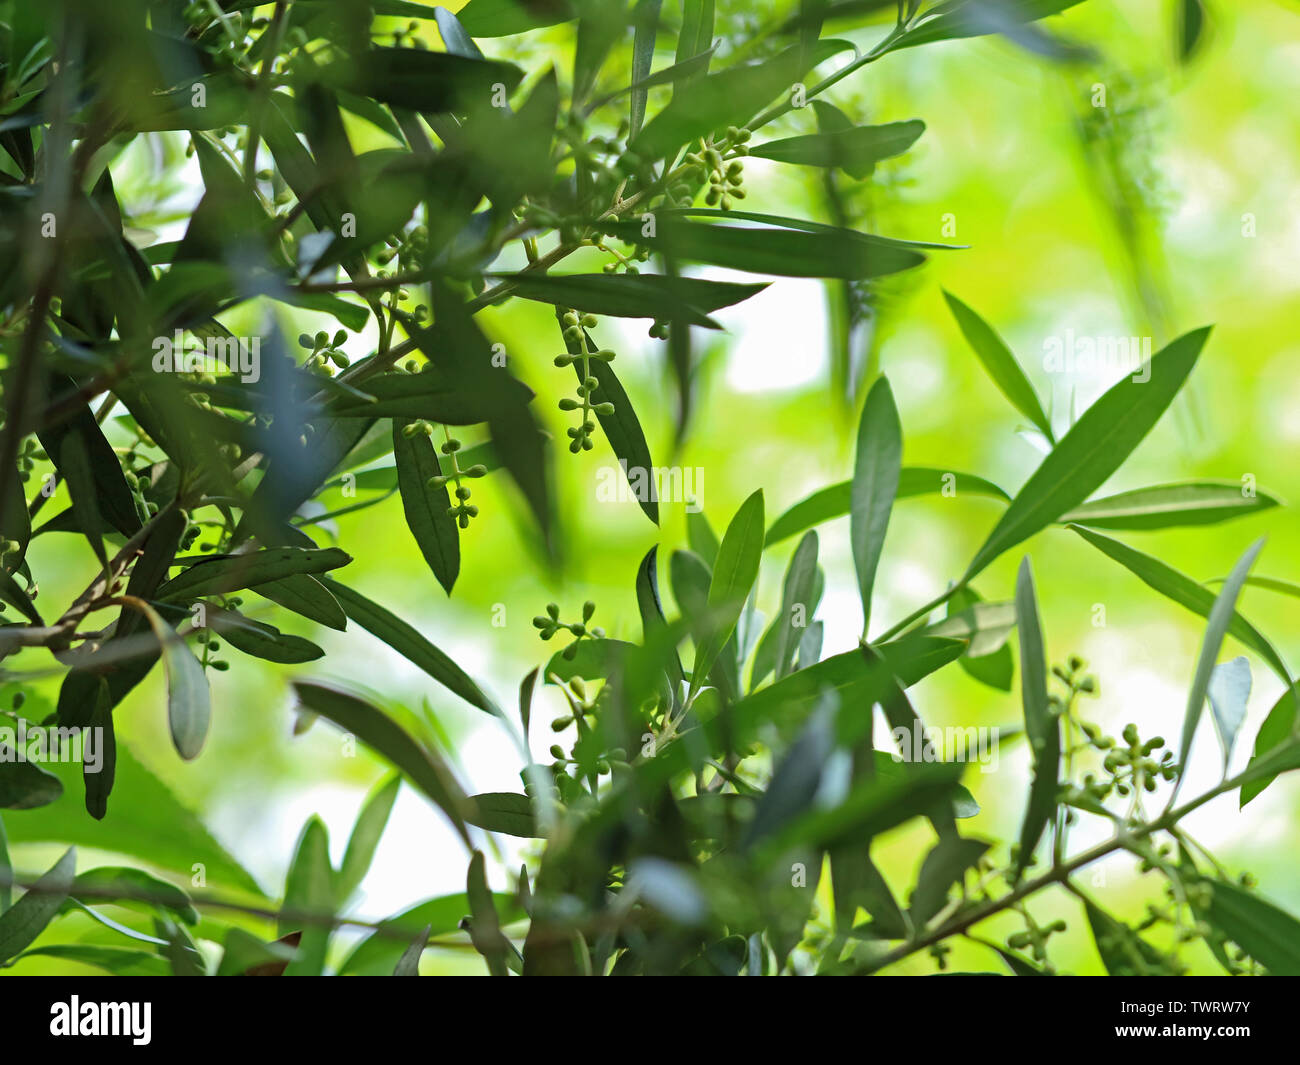 Olive tree blossoms with green bokeh, natural mediterran background. - Stock Image